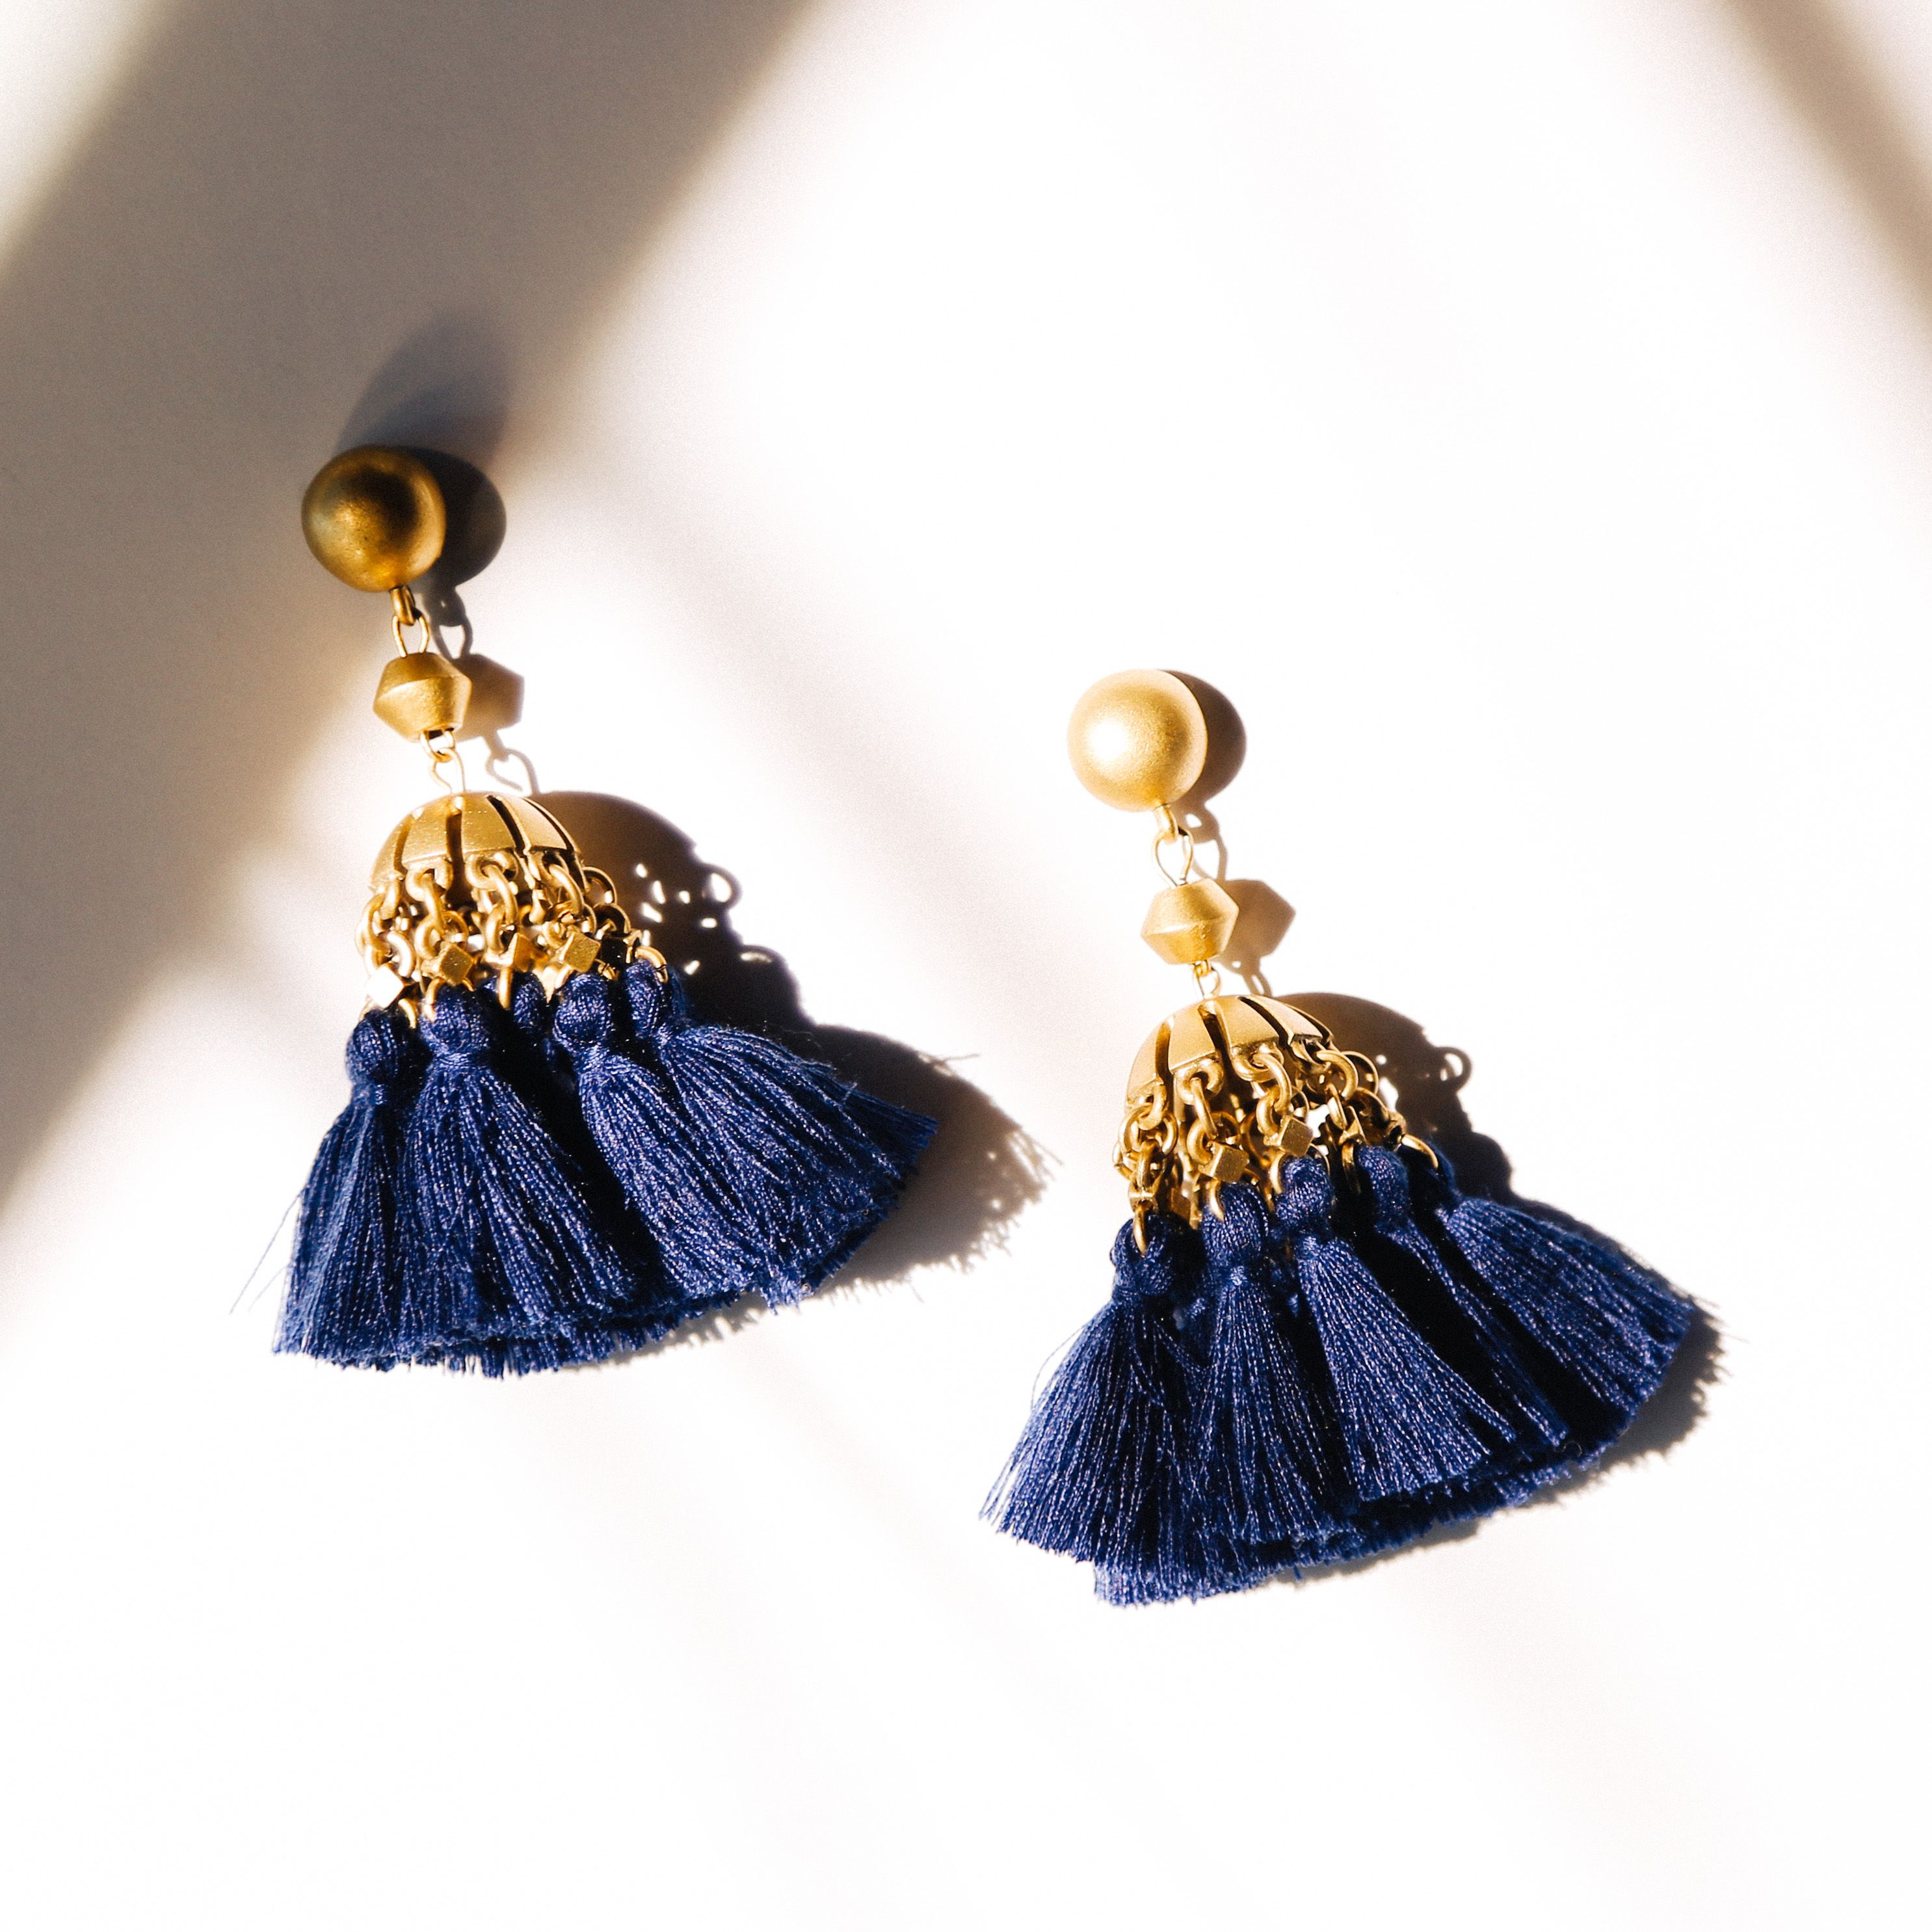 56d6c2c2f Loren Hope Audrey tassel earrings in navy. // | The Jewels | Tassel ...